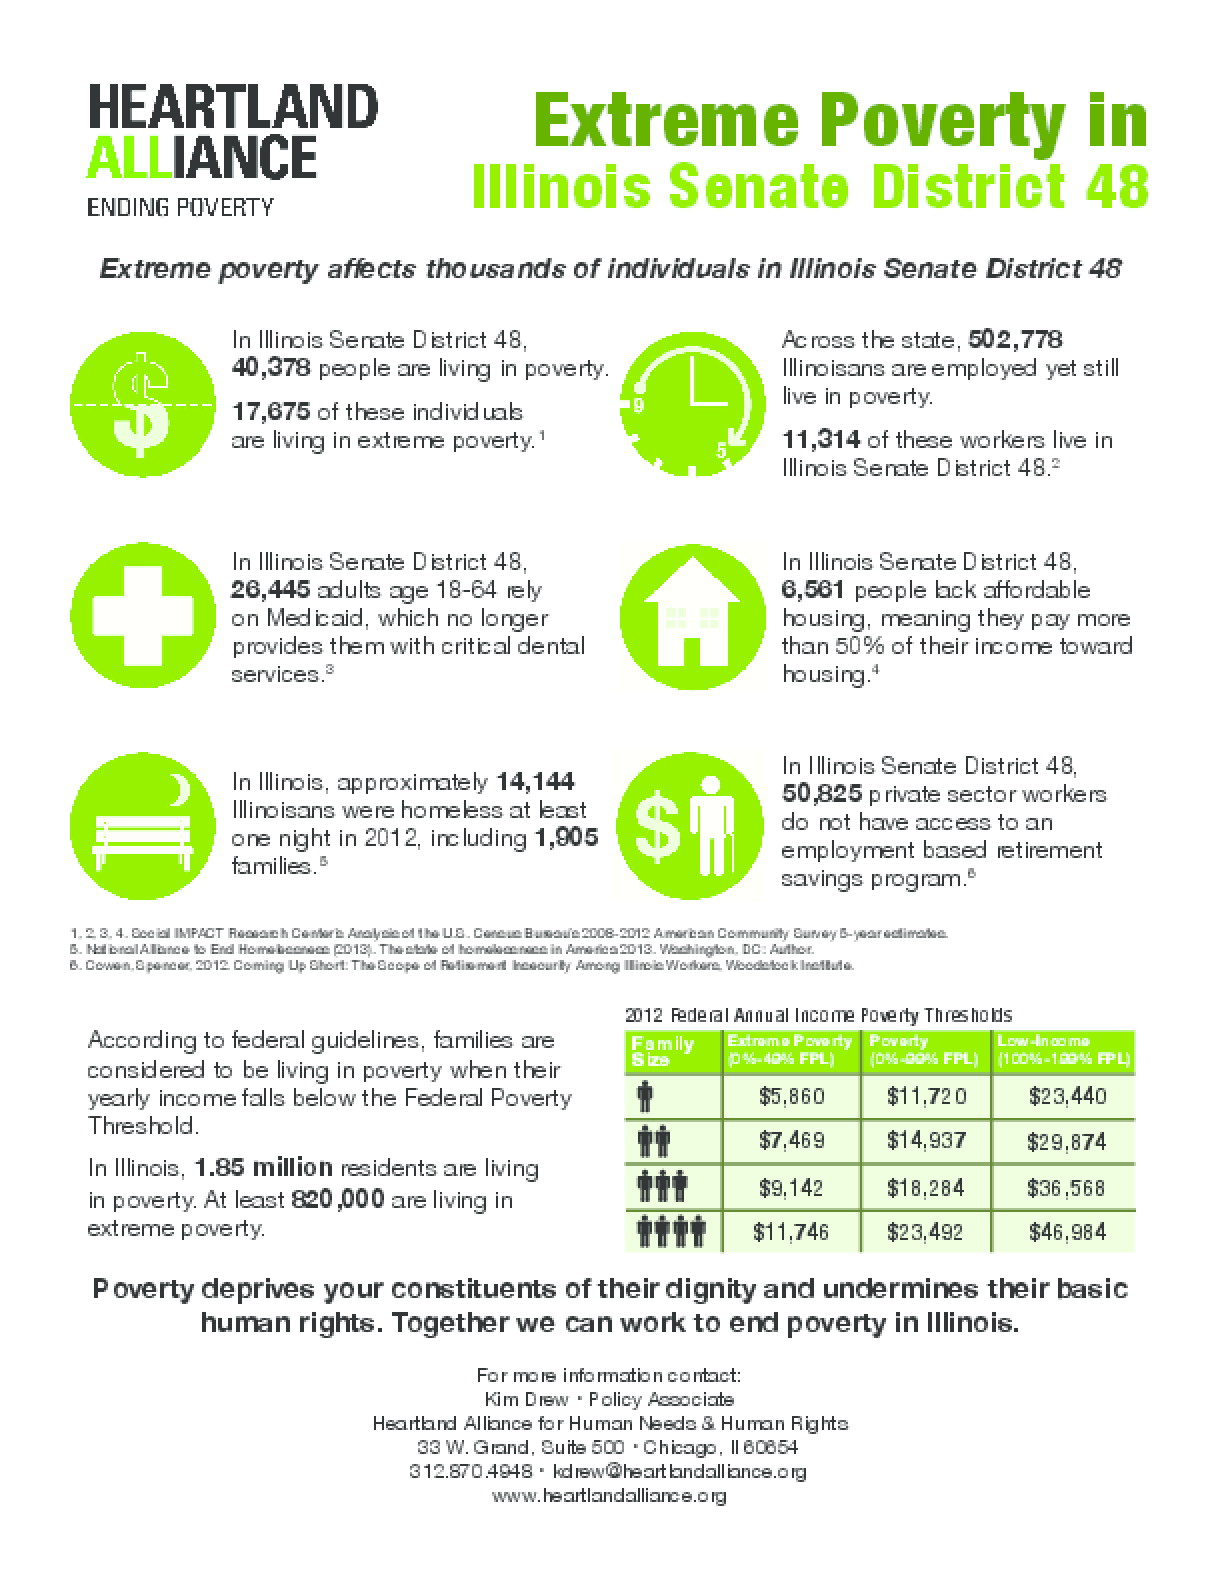 Poverty Fact Sheet for Illinois Senate District 48